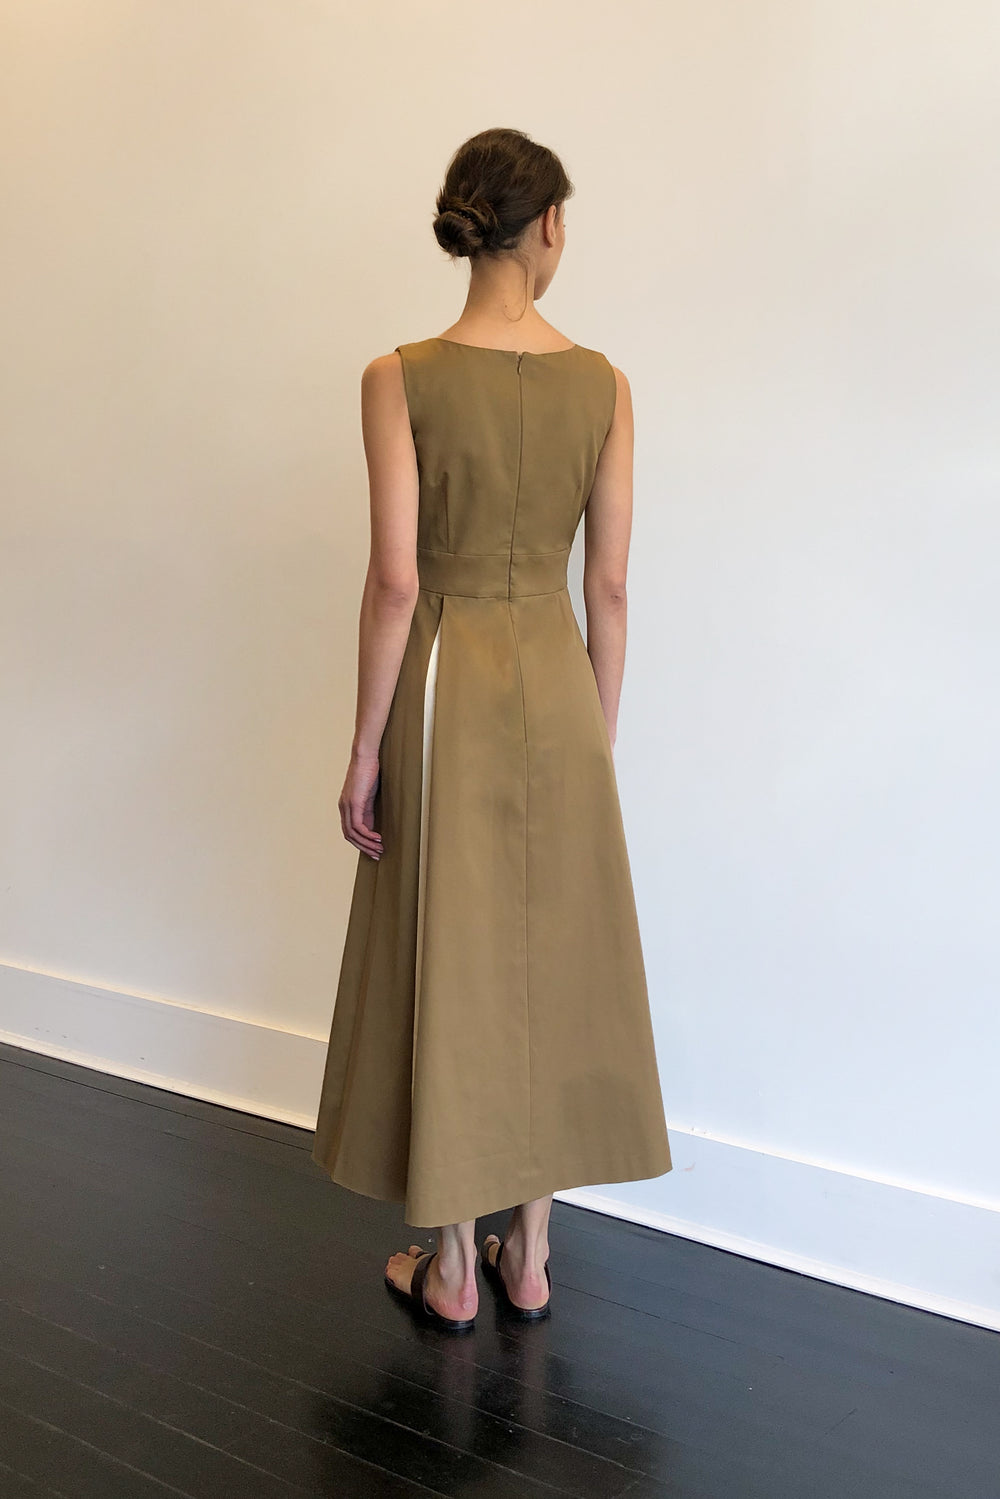 Fashion Designer CARL KAPP collection | Coco de Mer Dress Brown | Sydney Australia